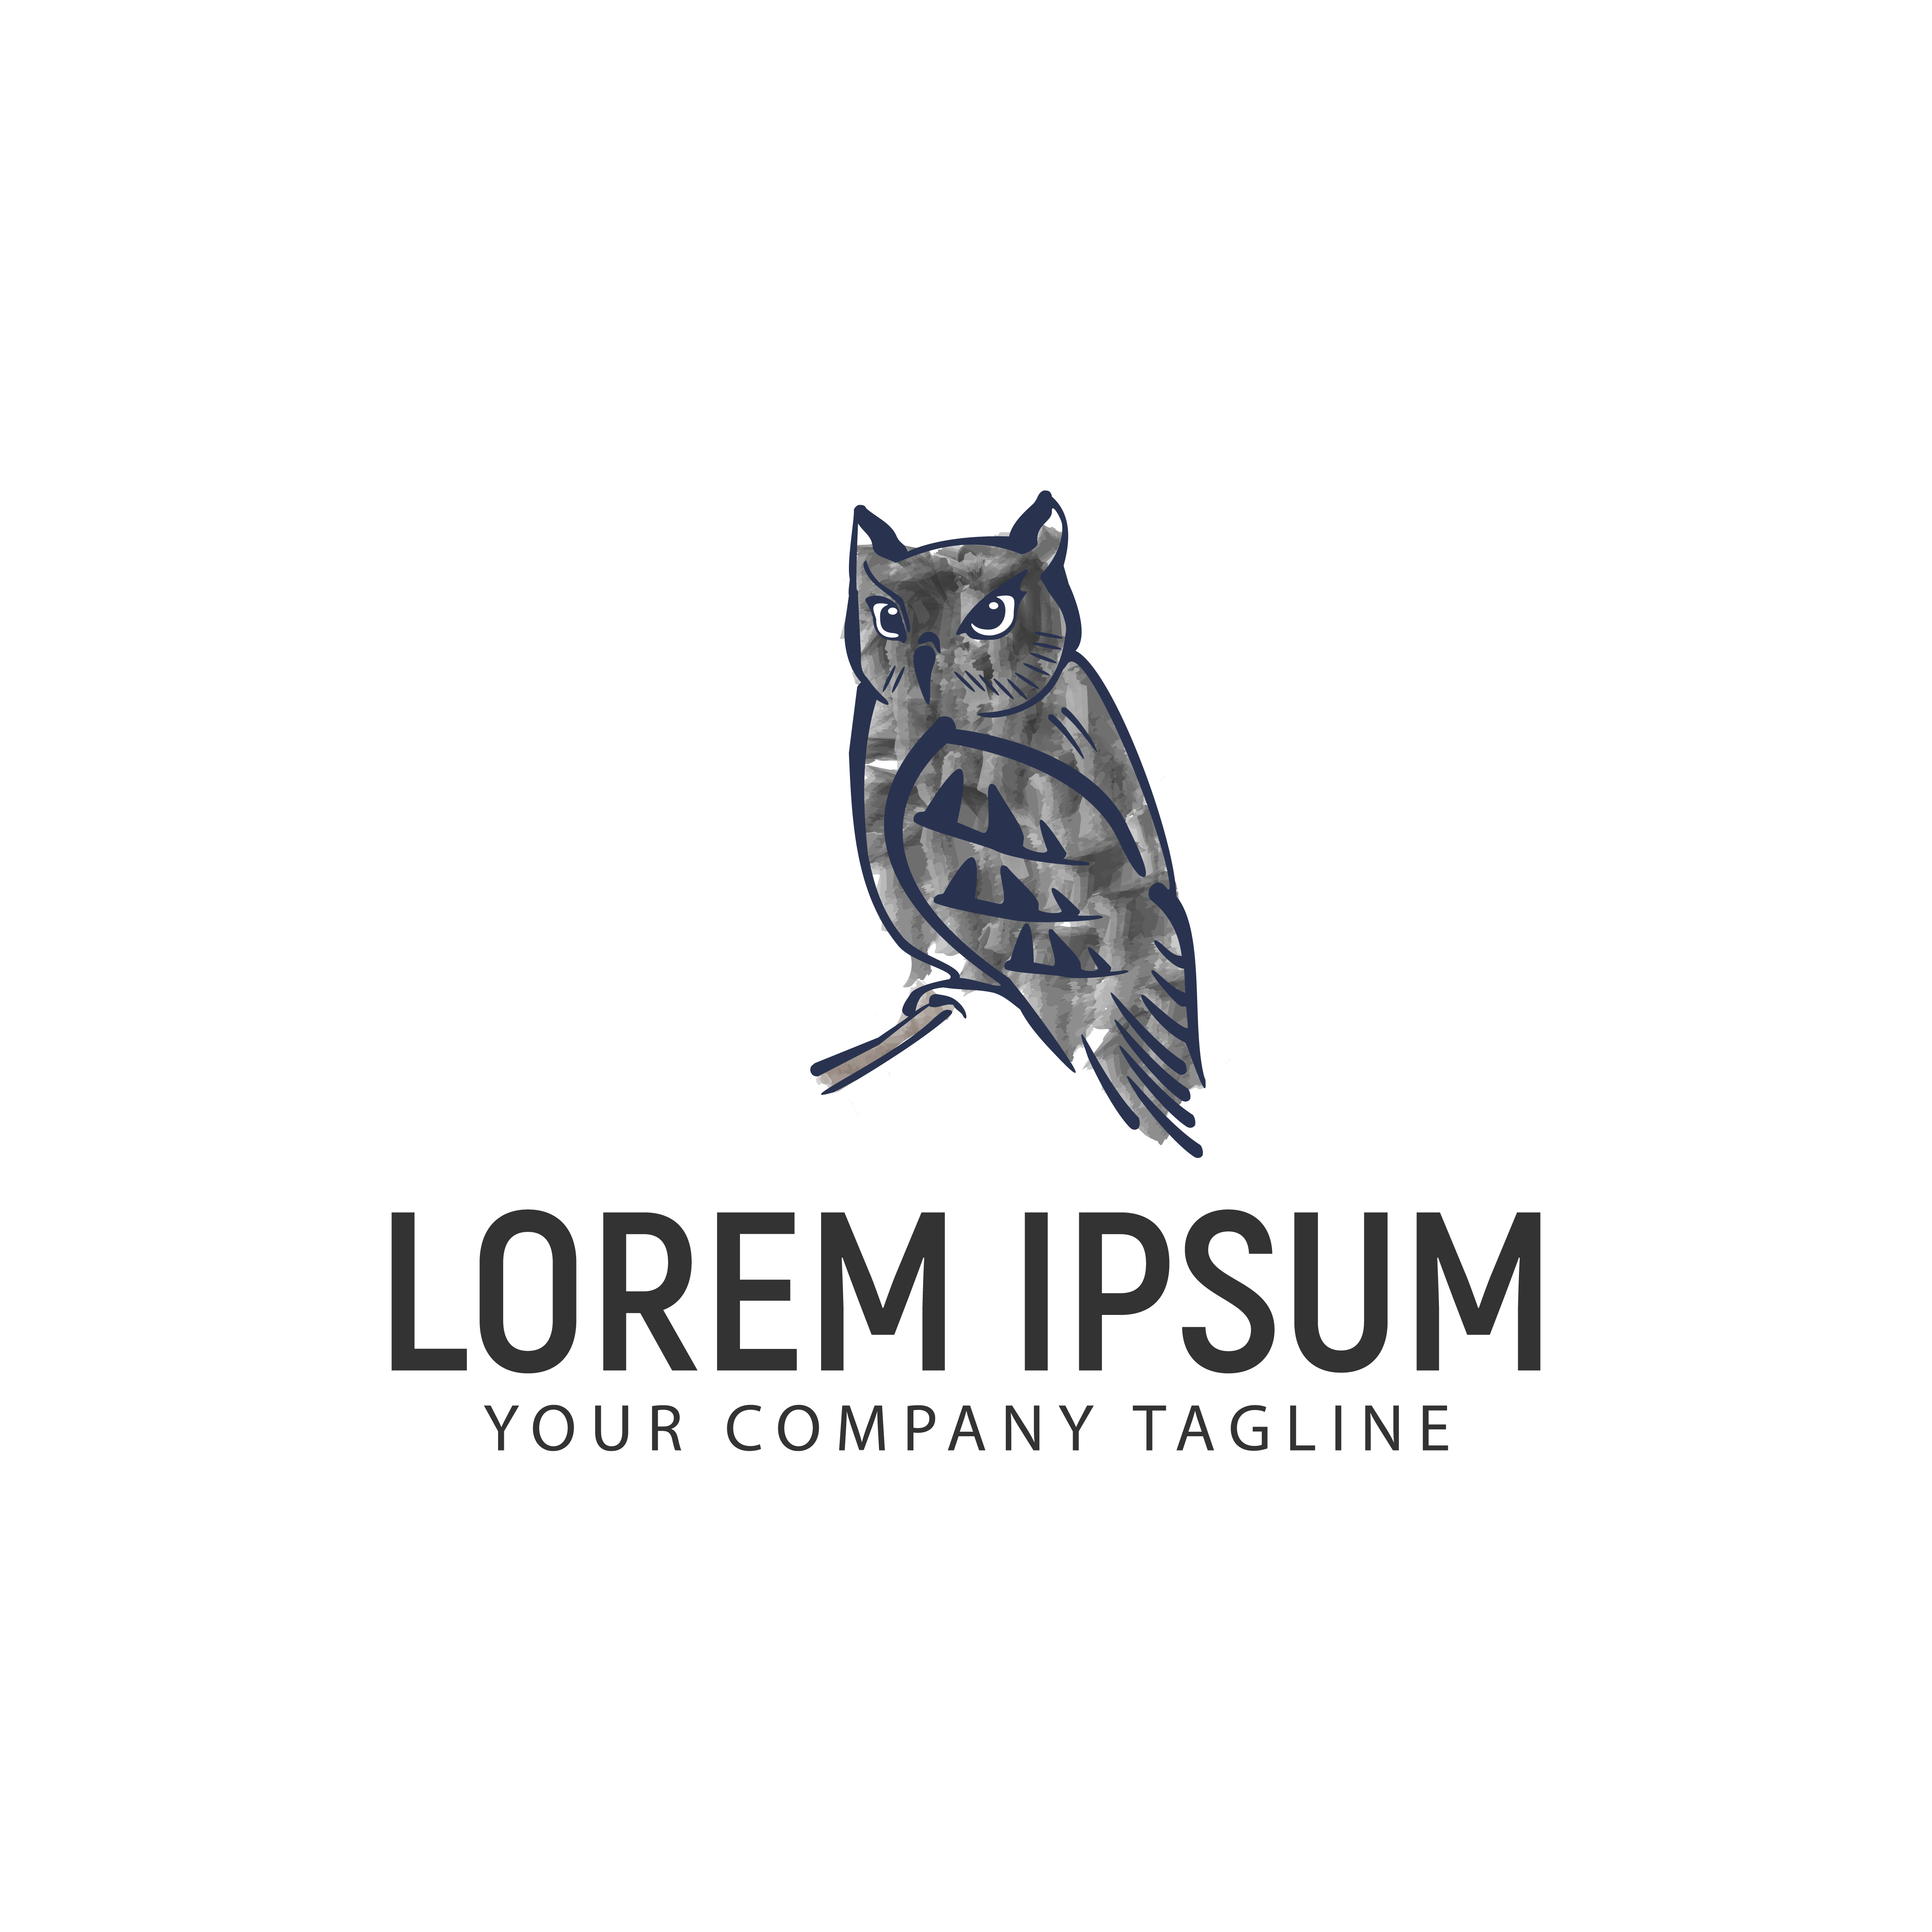 Owl logo with watercolor - Download Free Vectors, Clipart ...